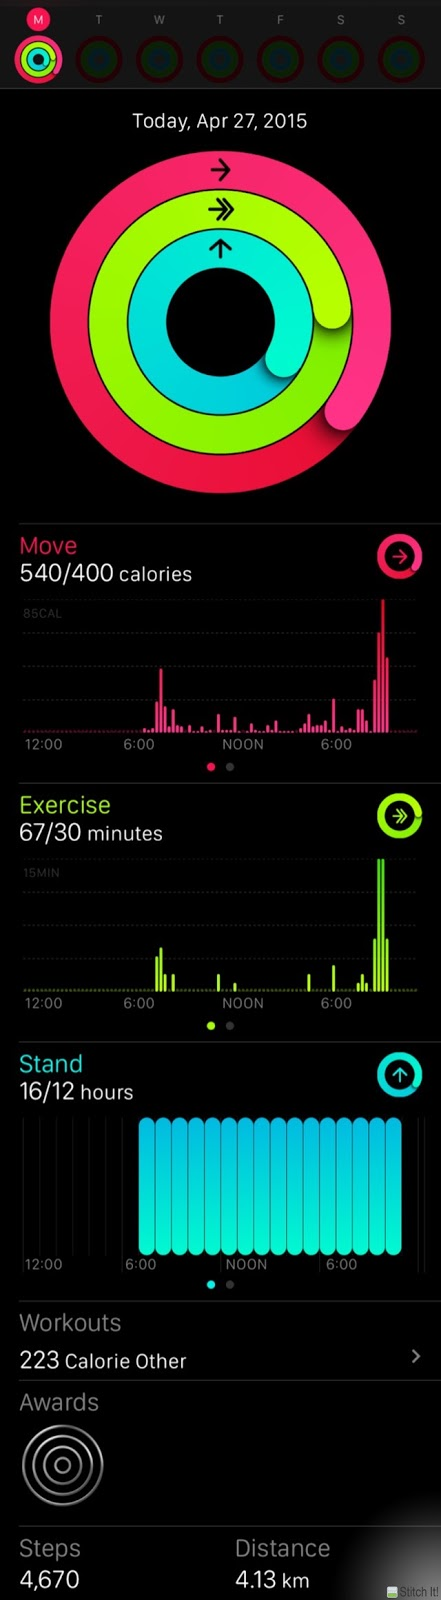 iPhone Activity App Move Exercise Stand